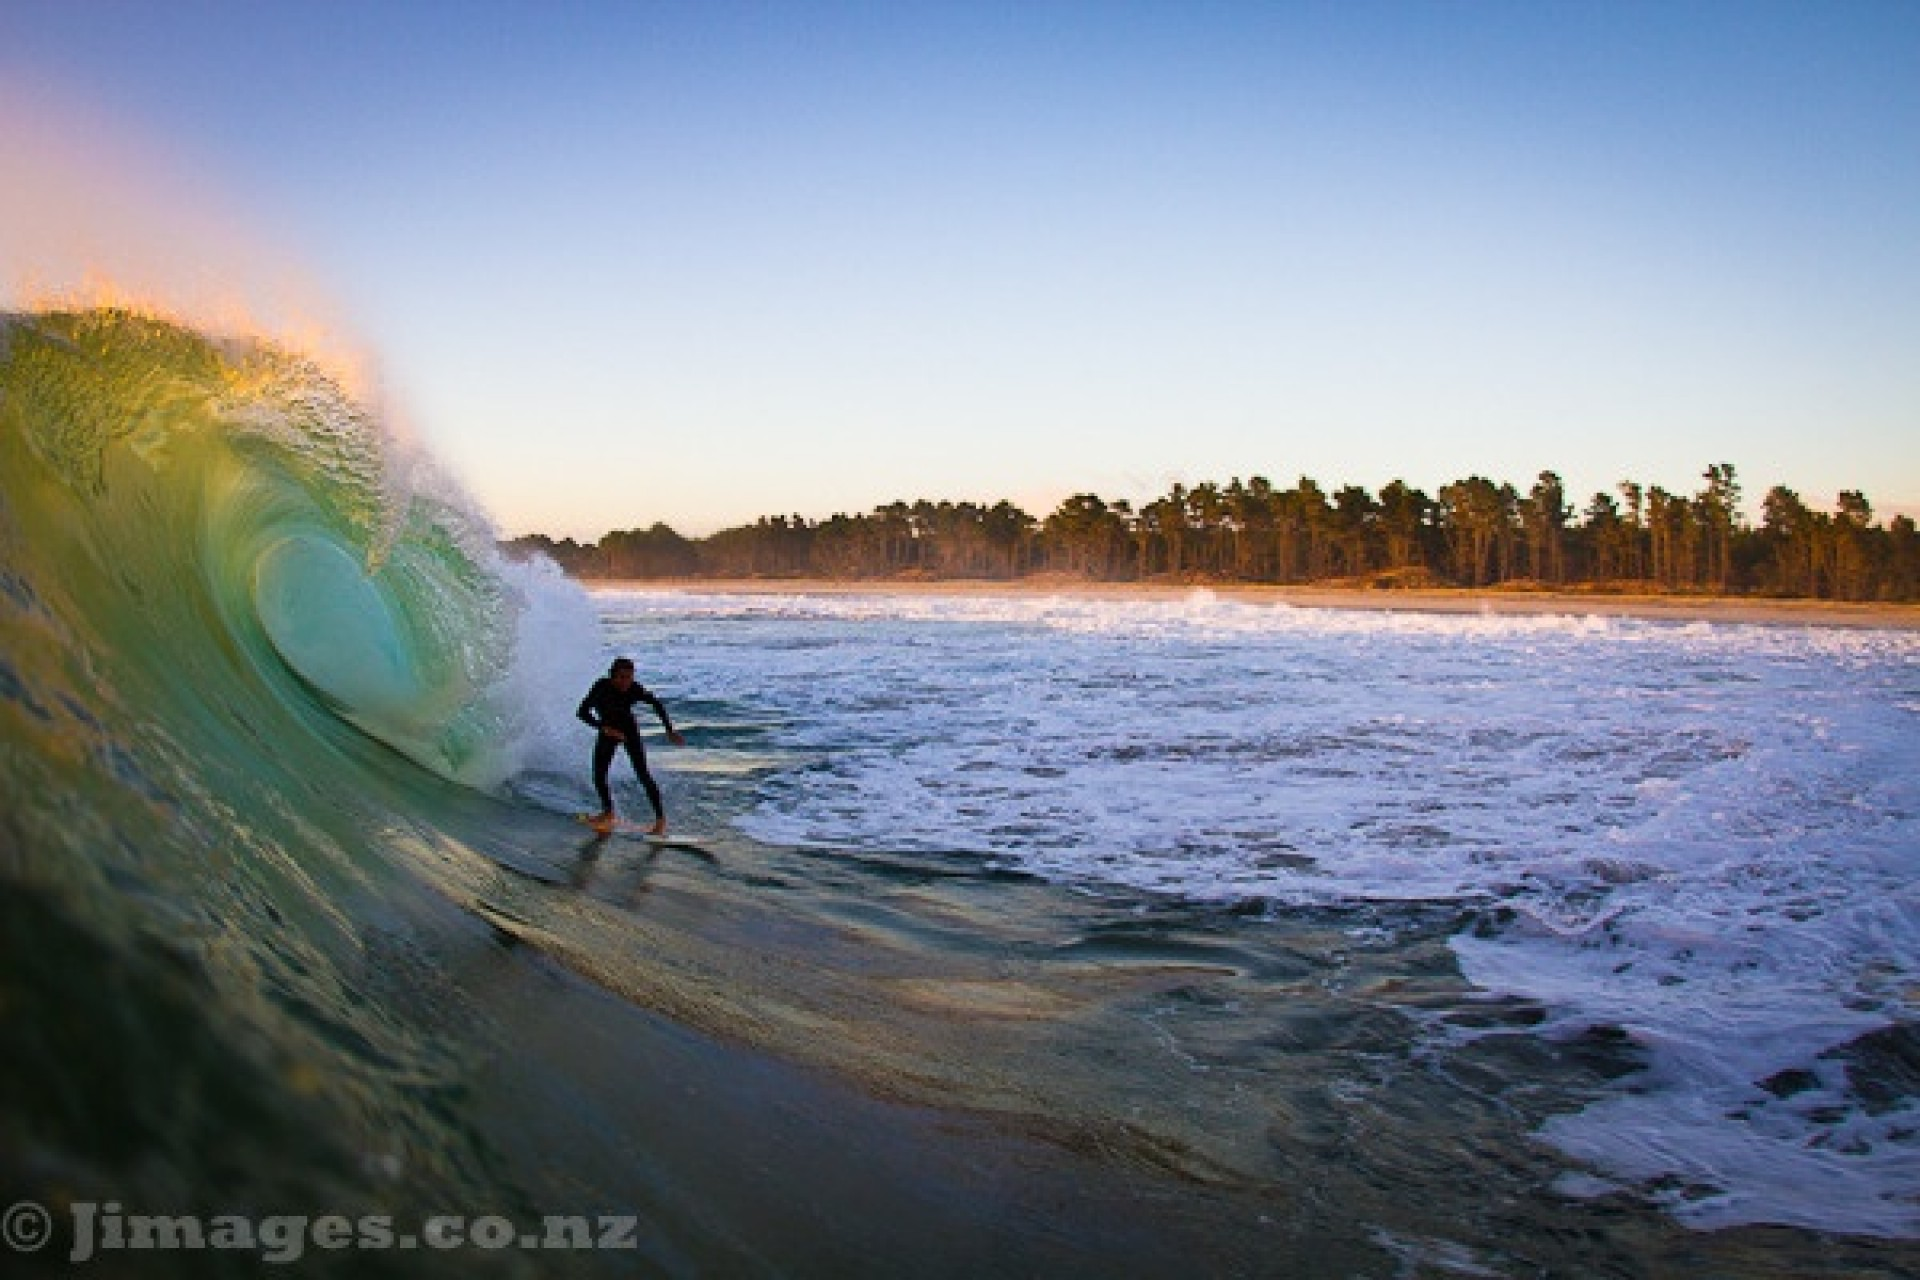 jimages.co.nz's photo of Mount Maunganui